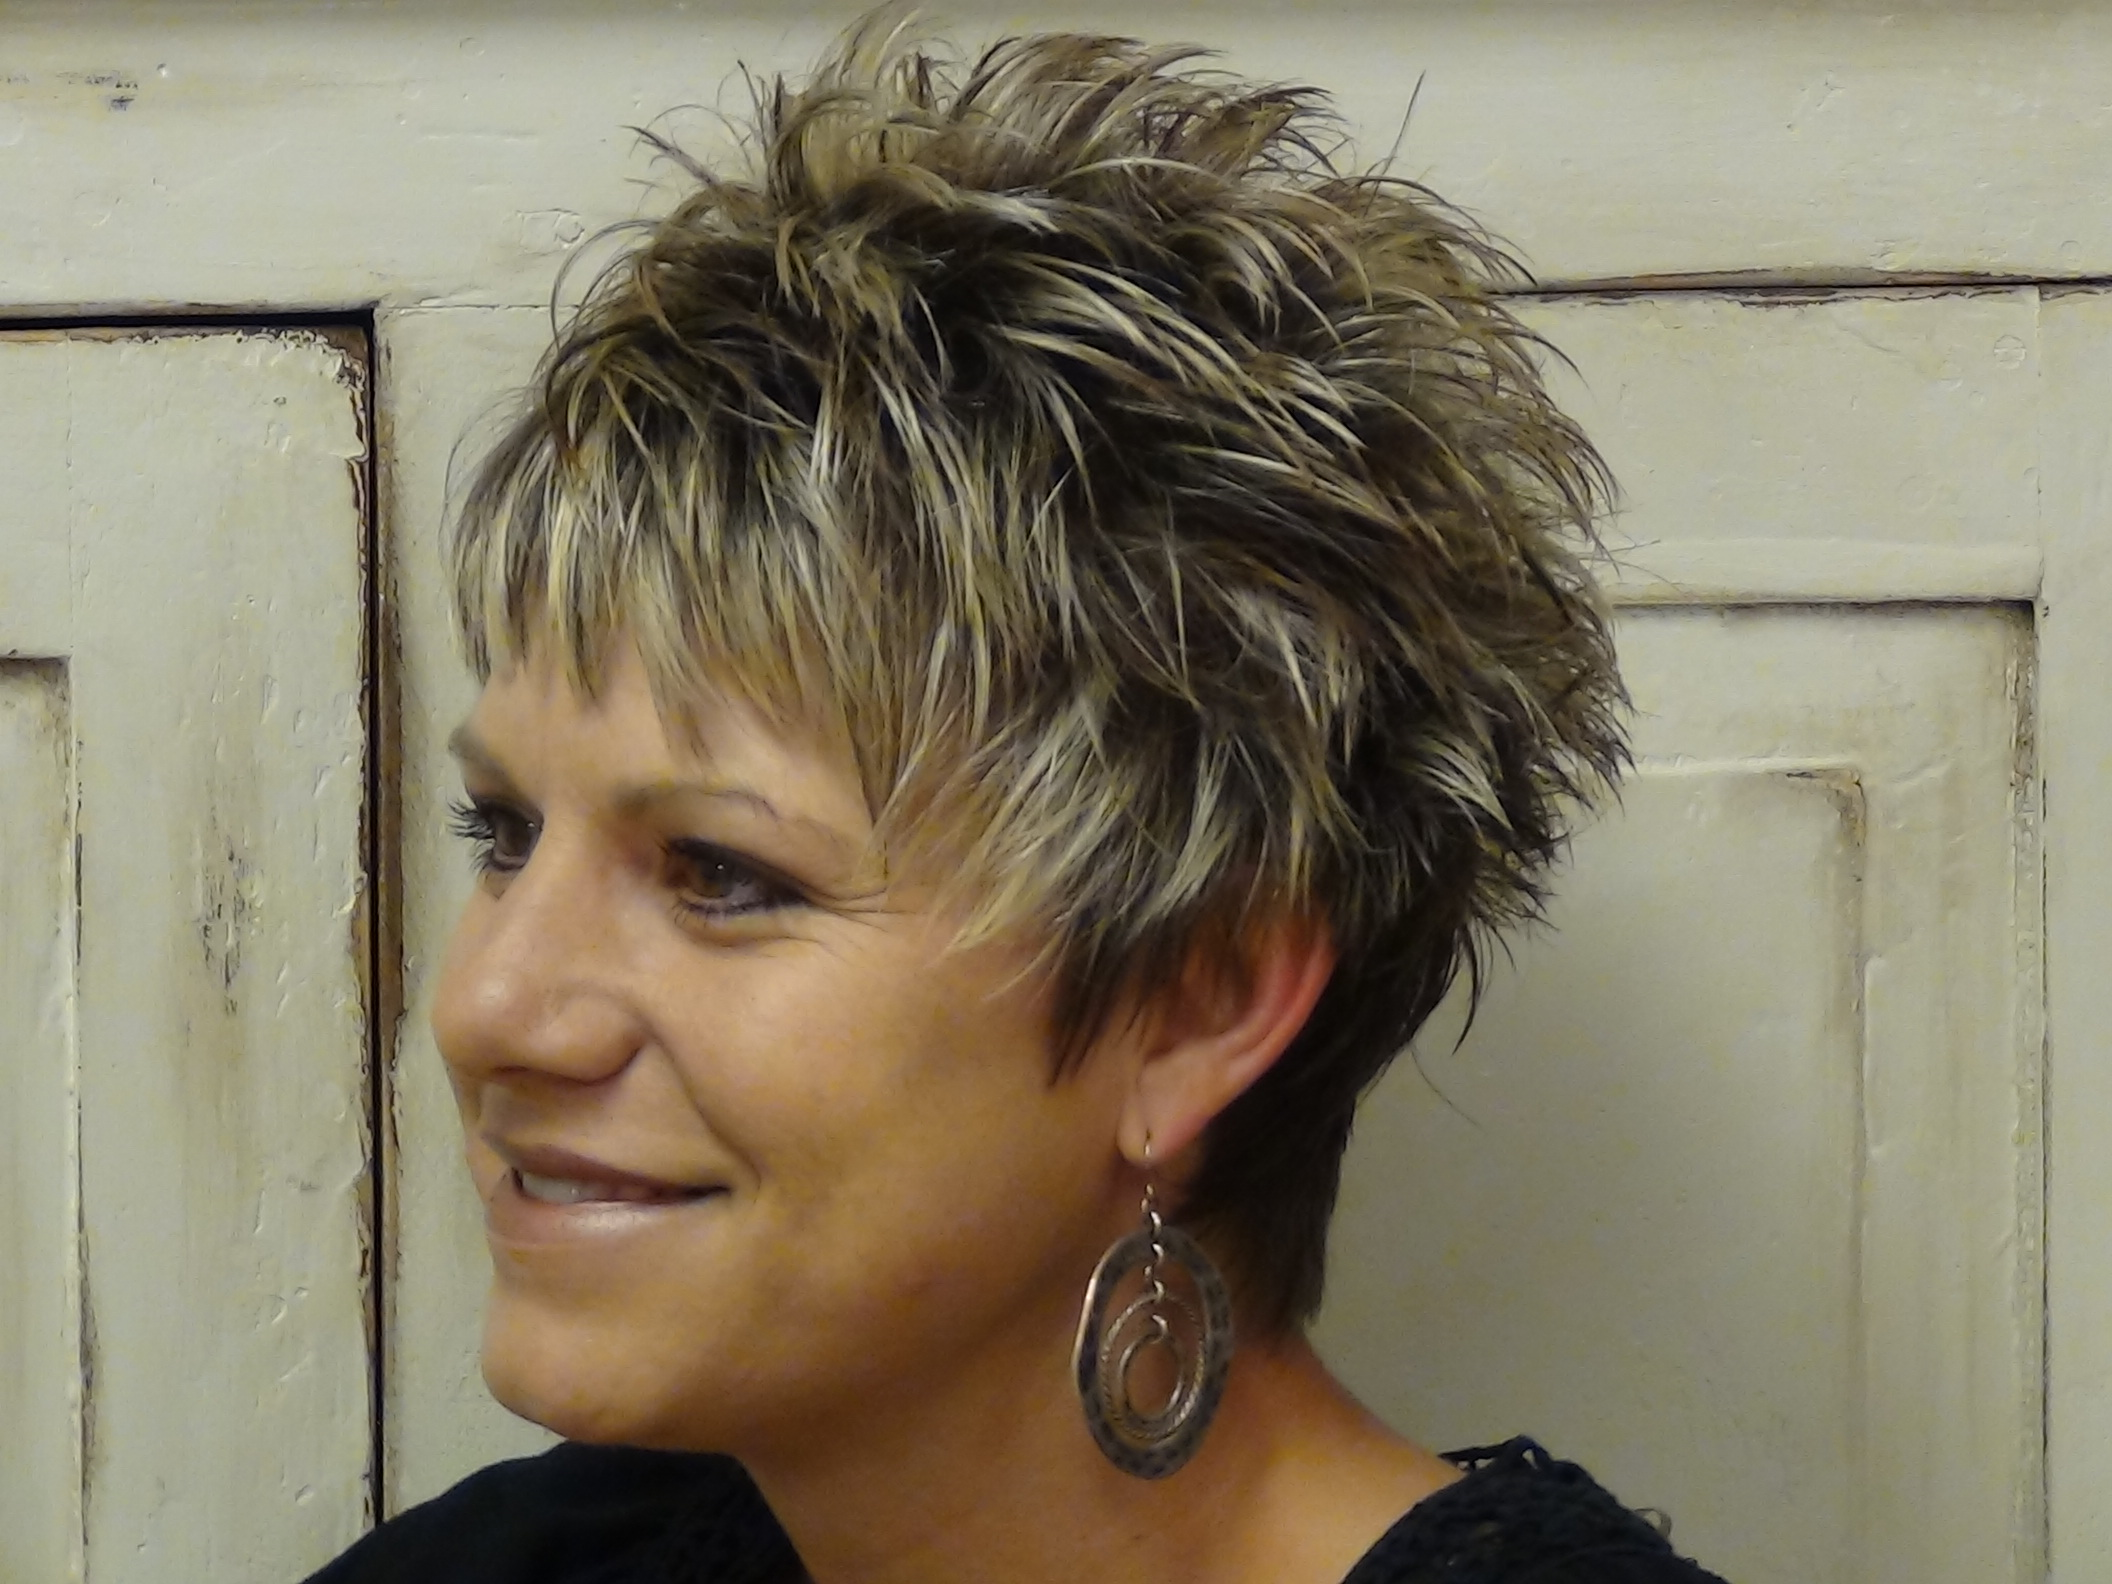 Sensational Cute Hairstyles For Women Over 50 Fave Hairstyles Short Hairstyles Gunalazisus